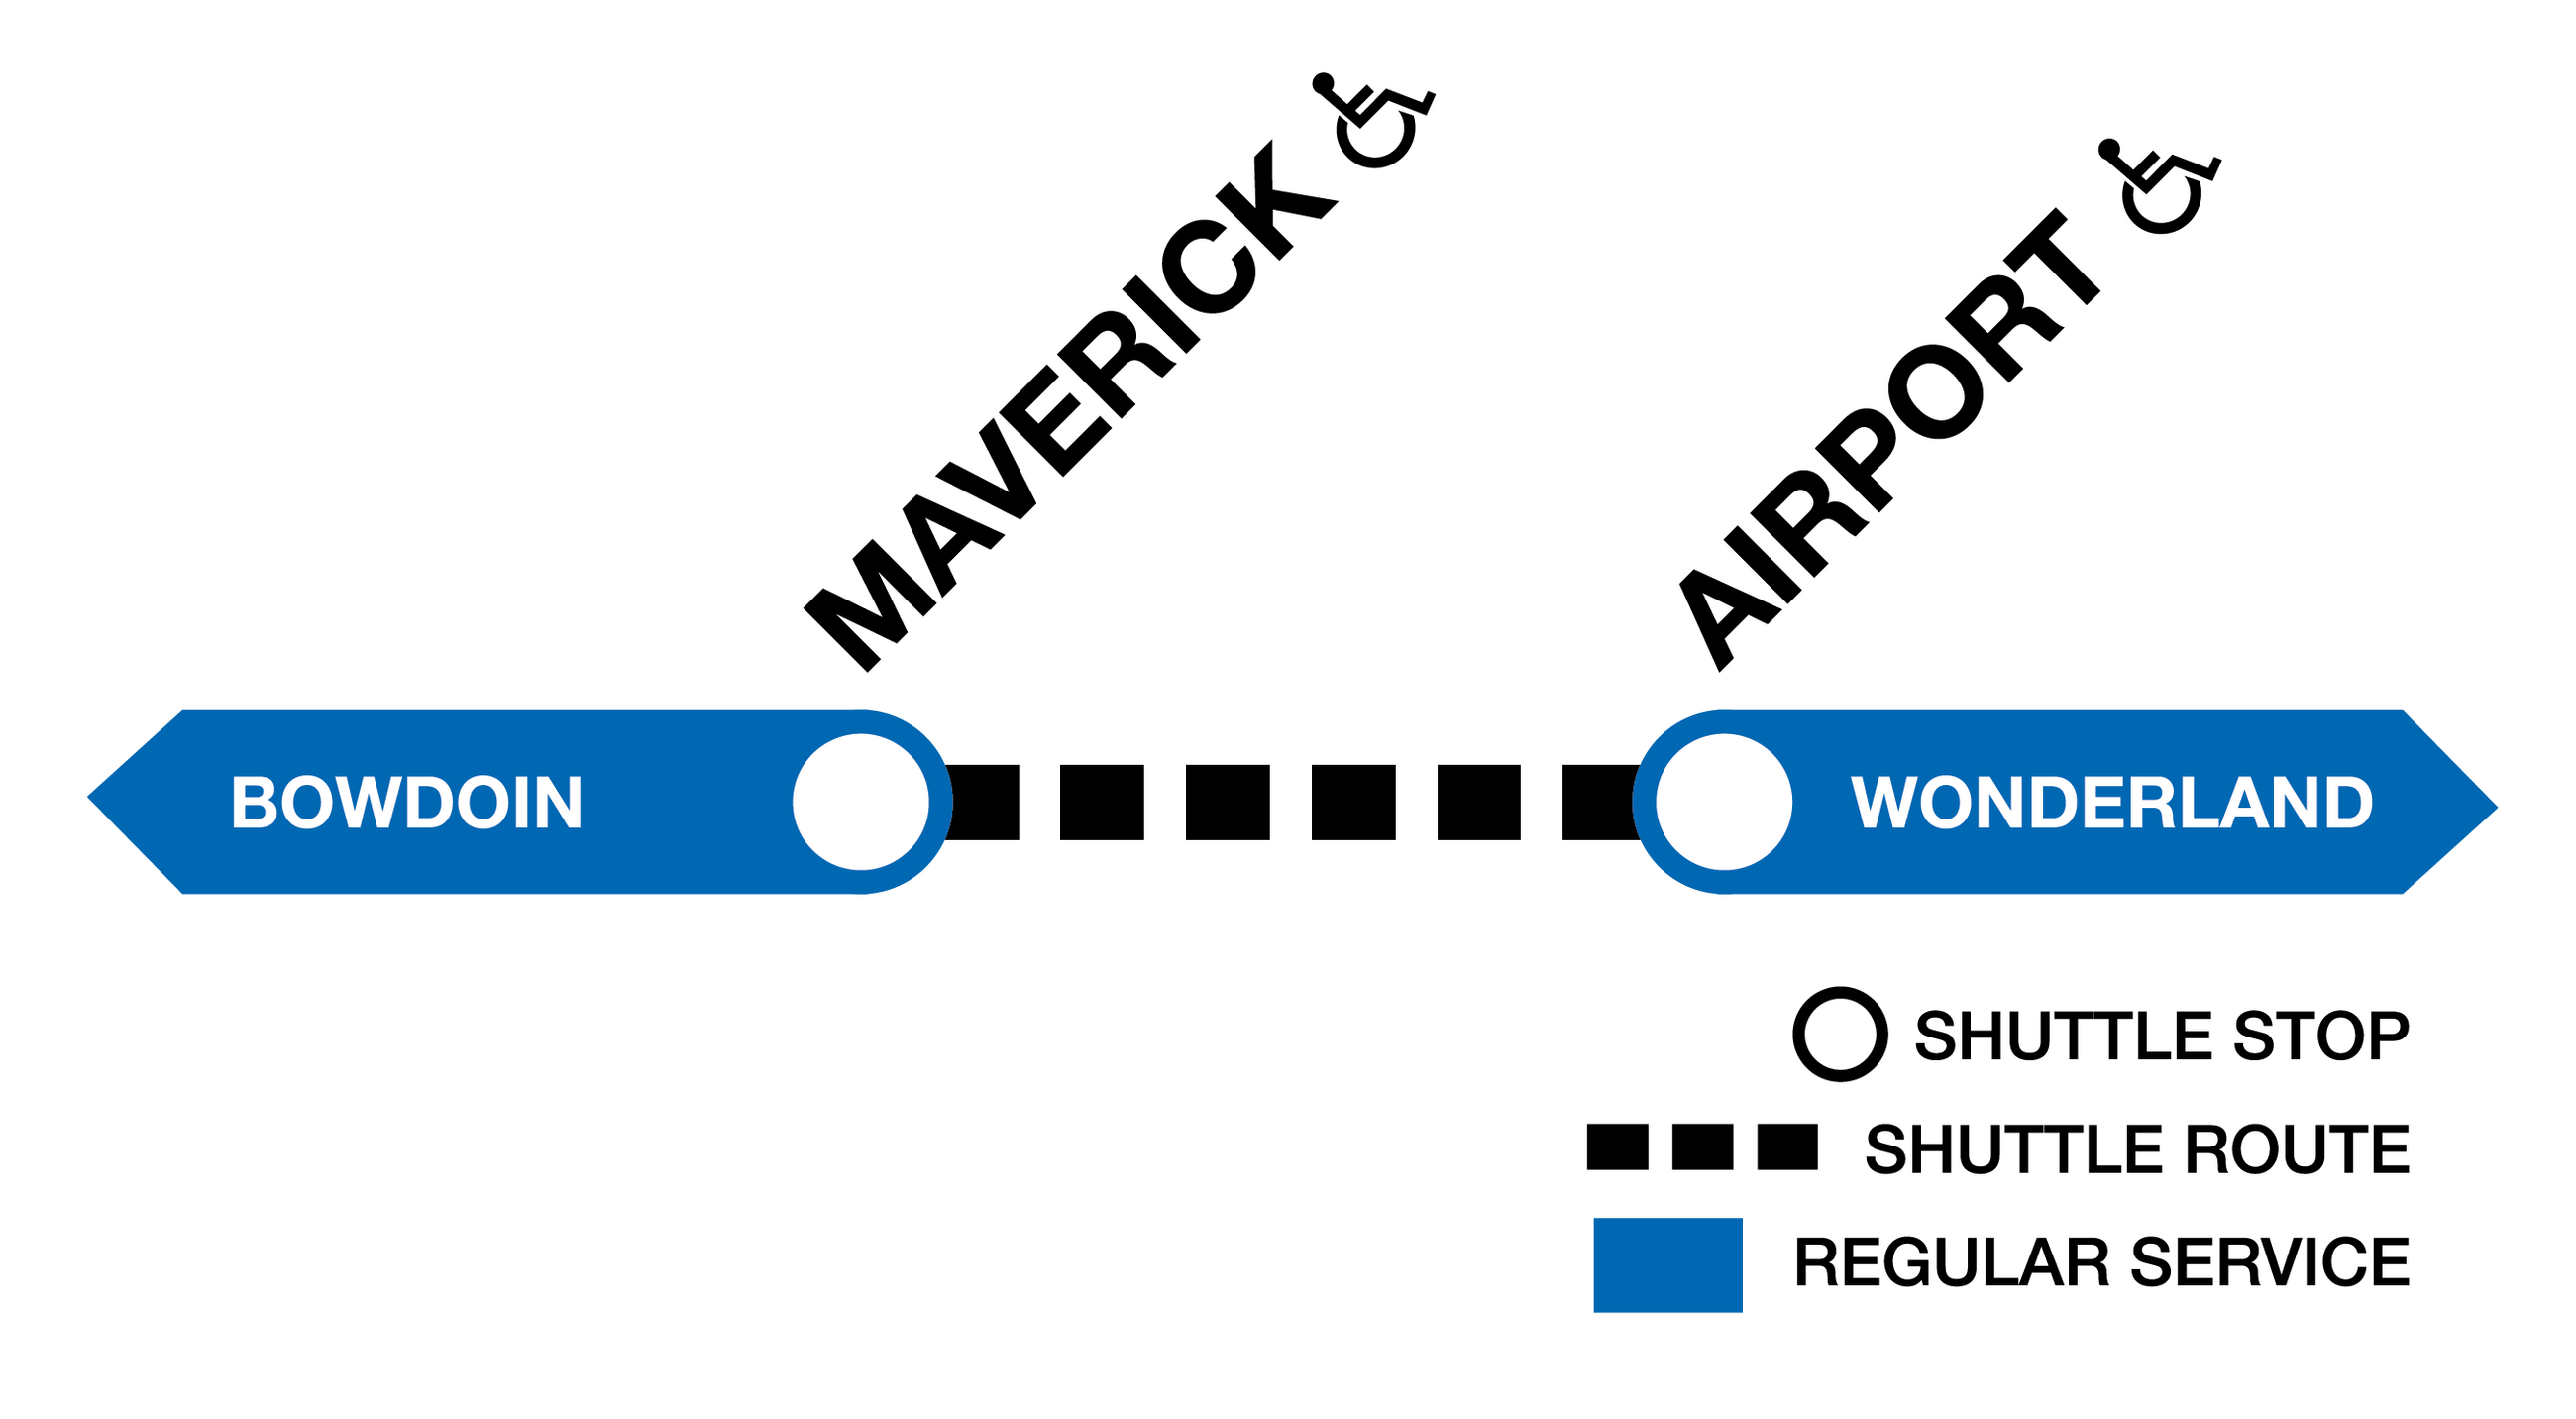 Shuttle graphic of the Blue Line, showing bus shuttles between Maverick and Airport.